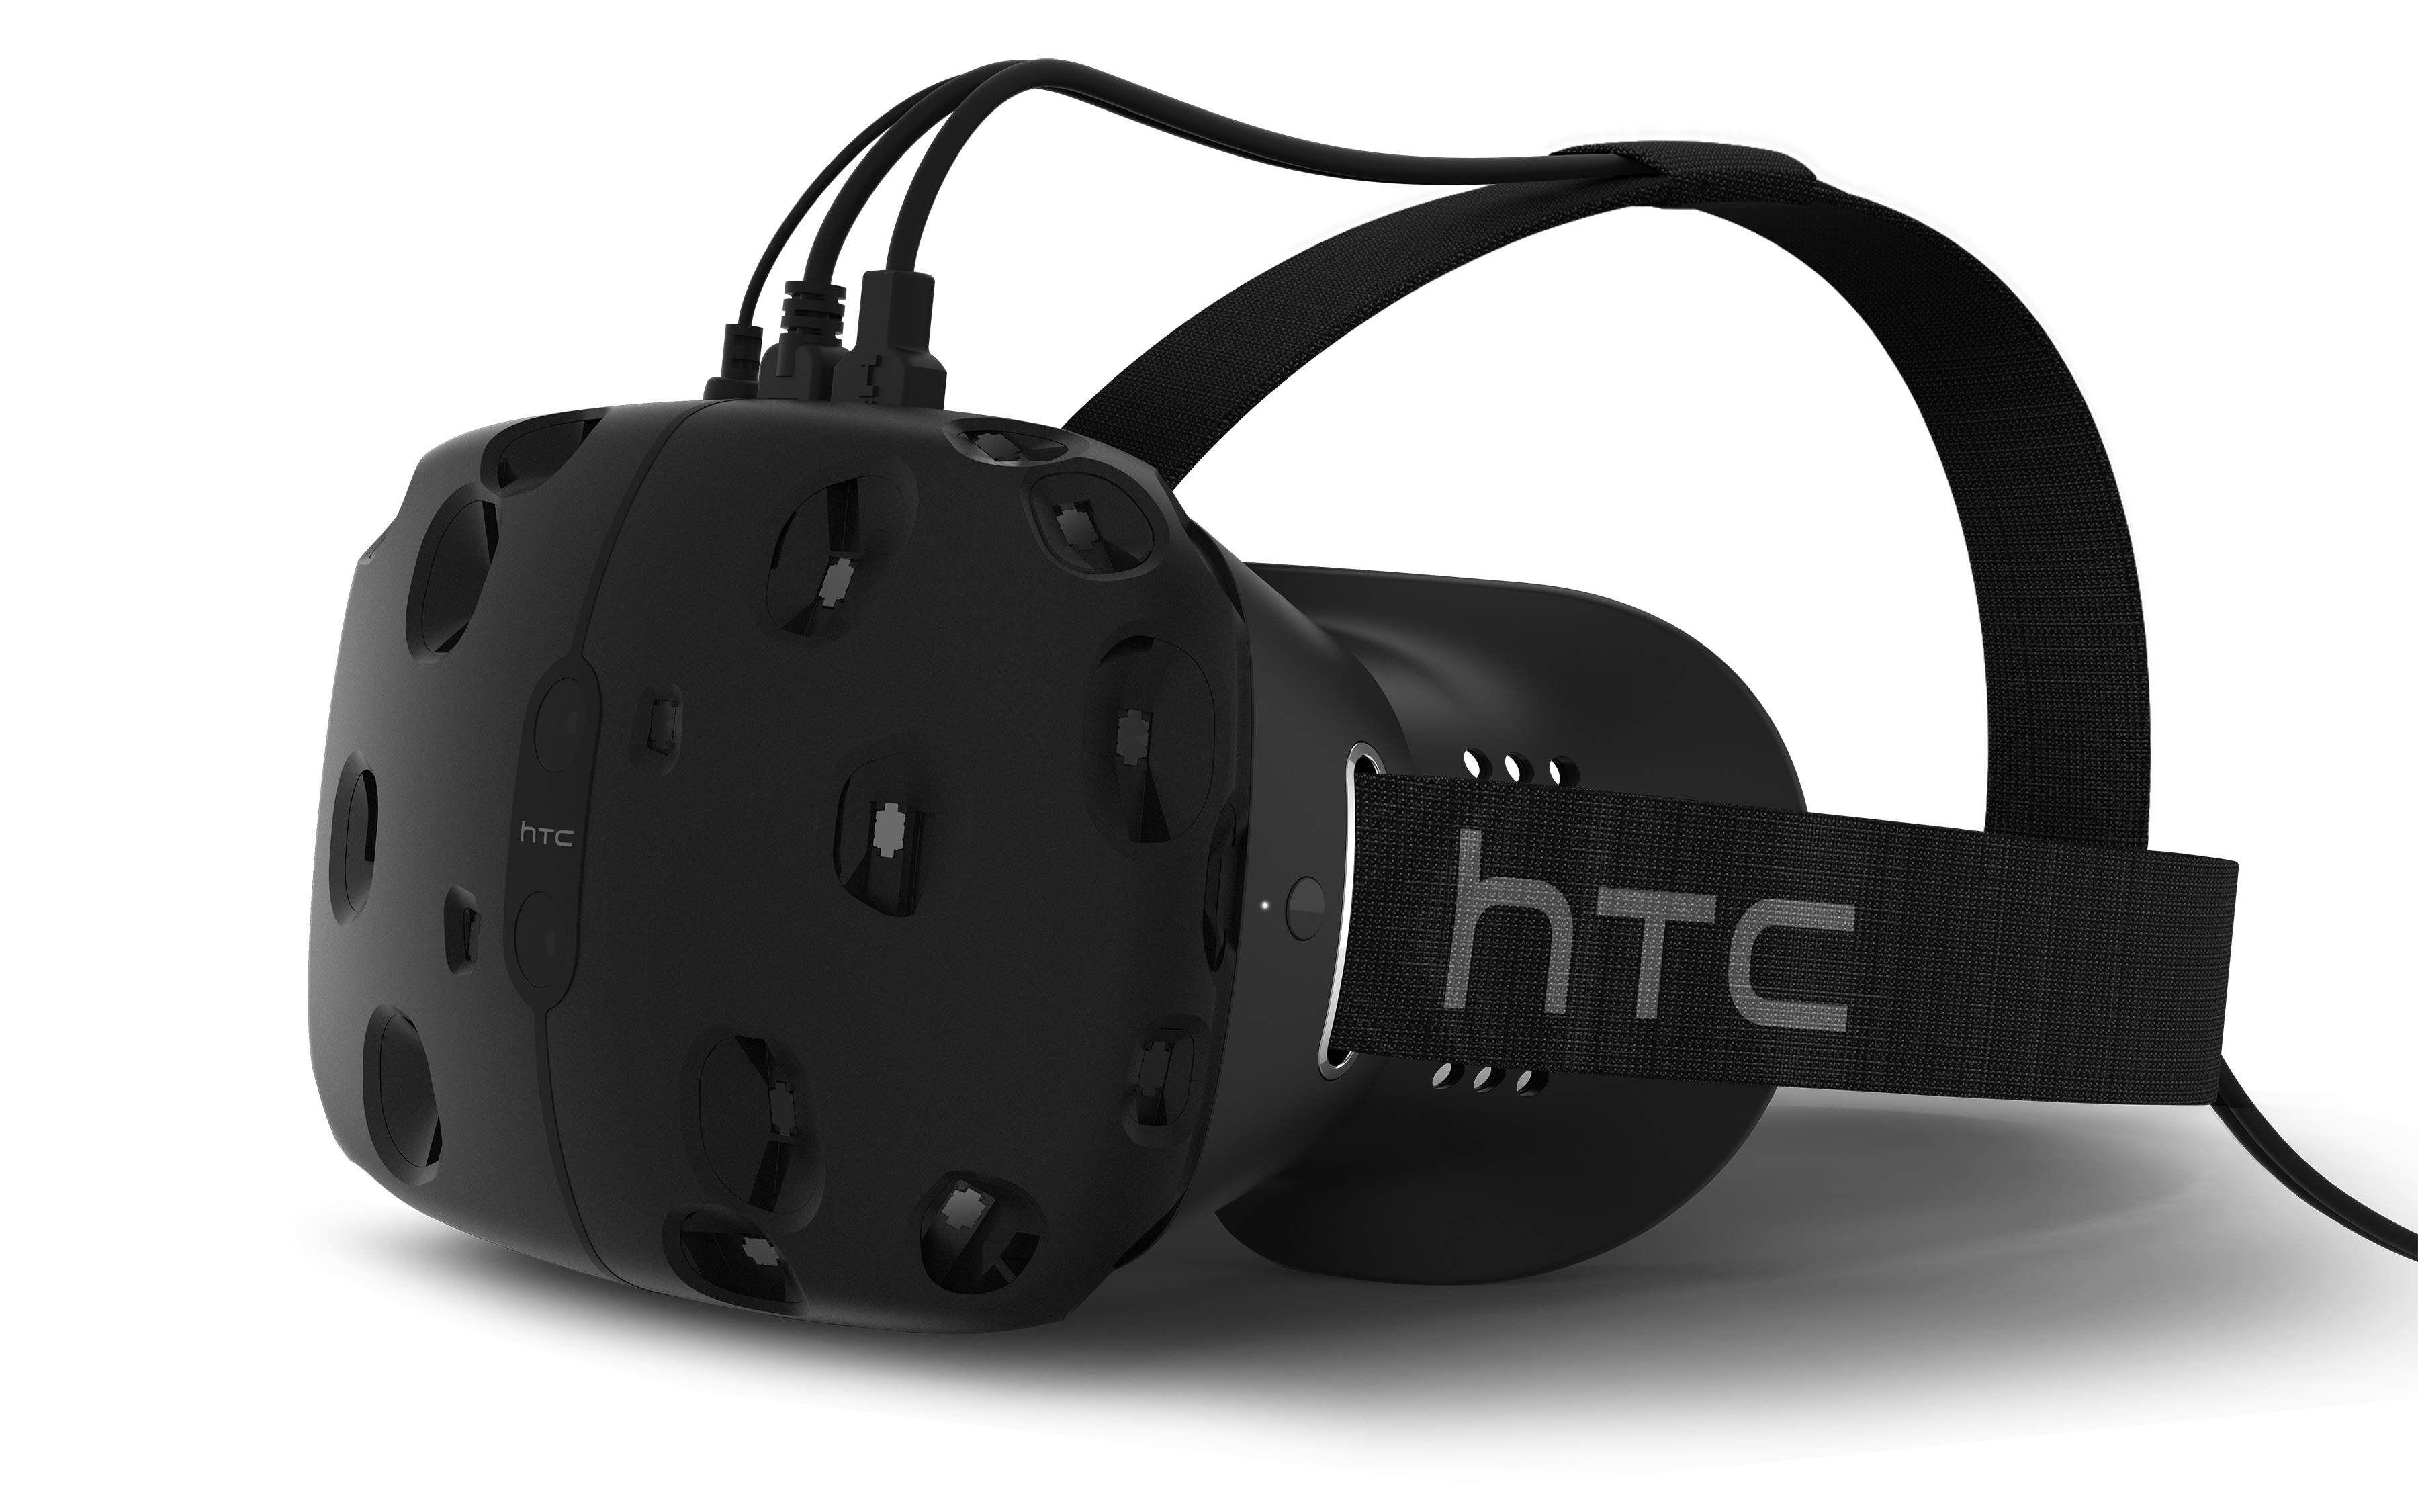 The HTC Vive is going to be the Rift's main competitor.